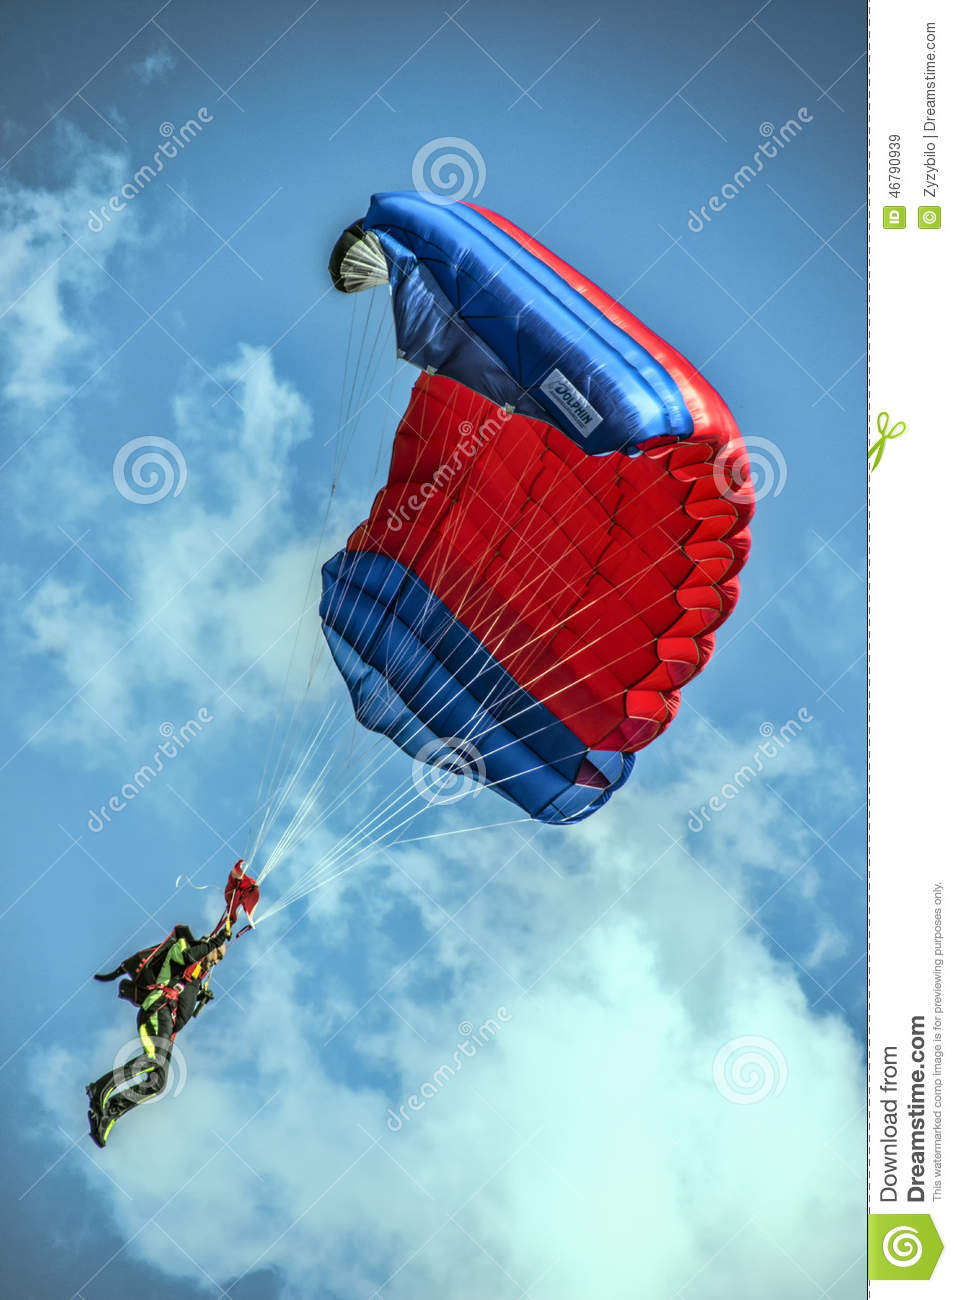 Skydiver editorial stock image  Image of skill, people - 46790939